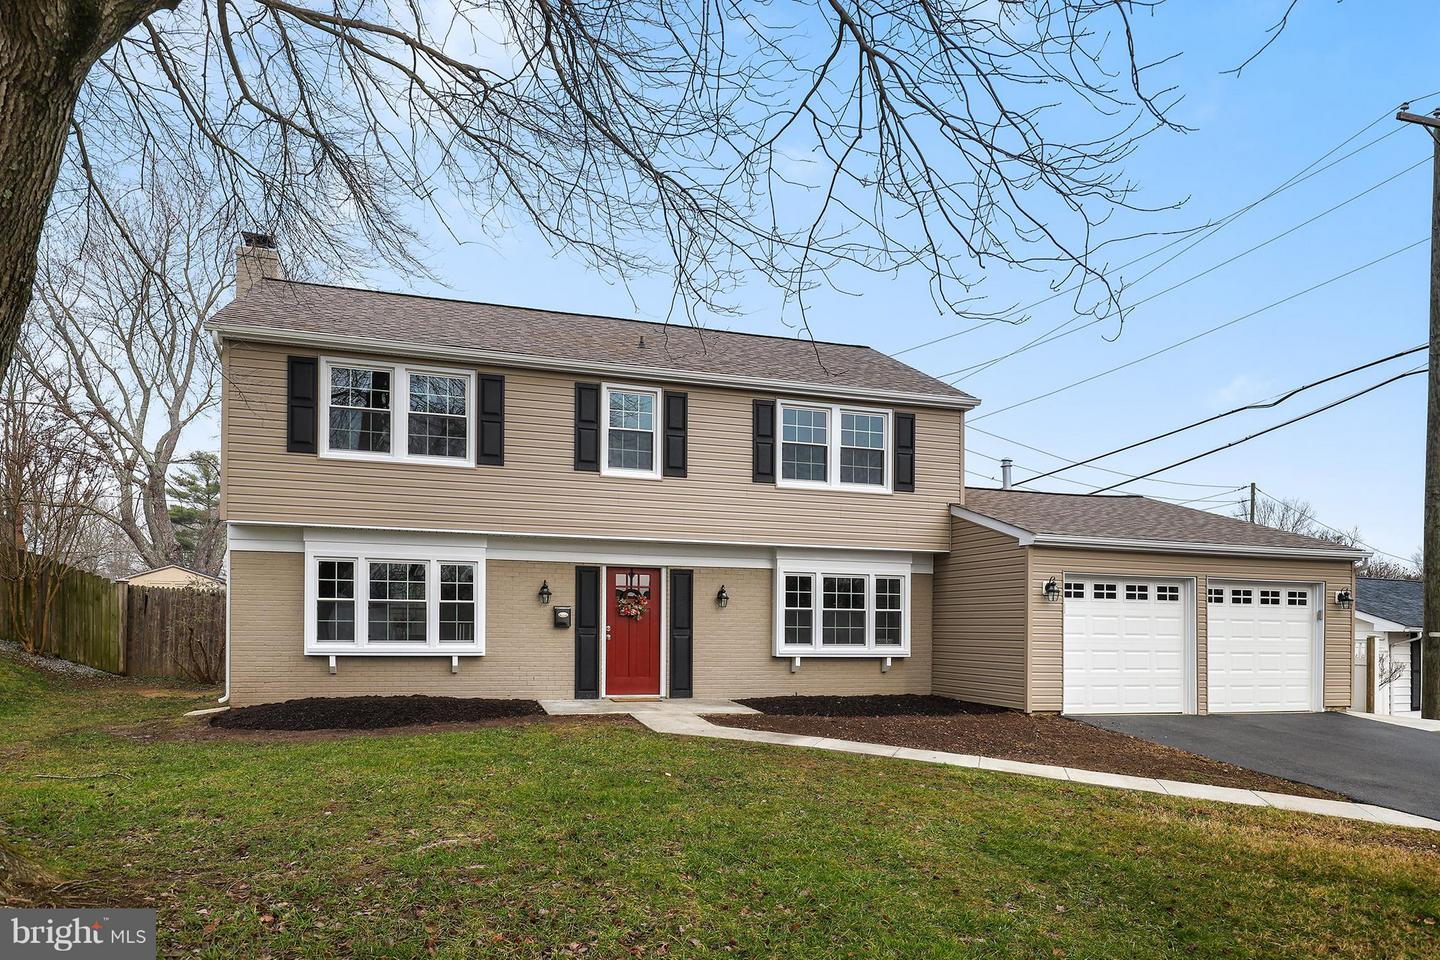 12512 CHELTON LANE, BOWIE, Maryland